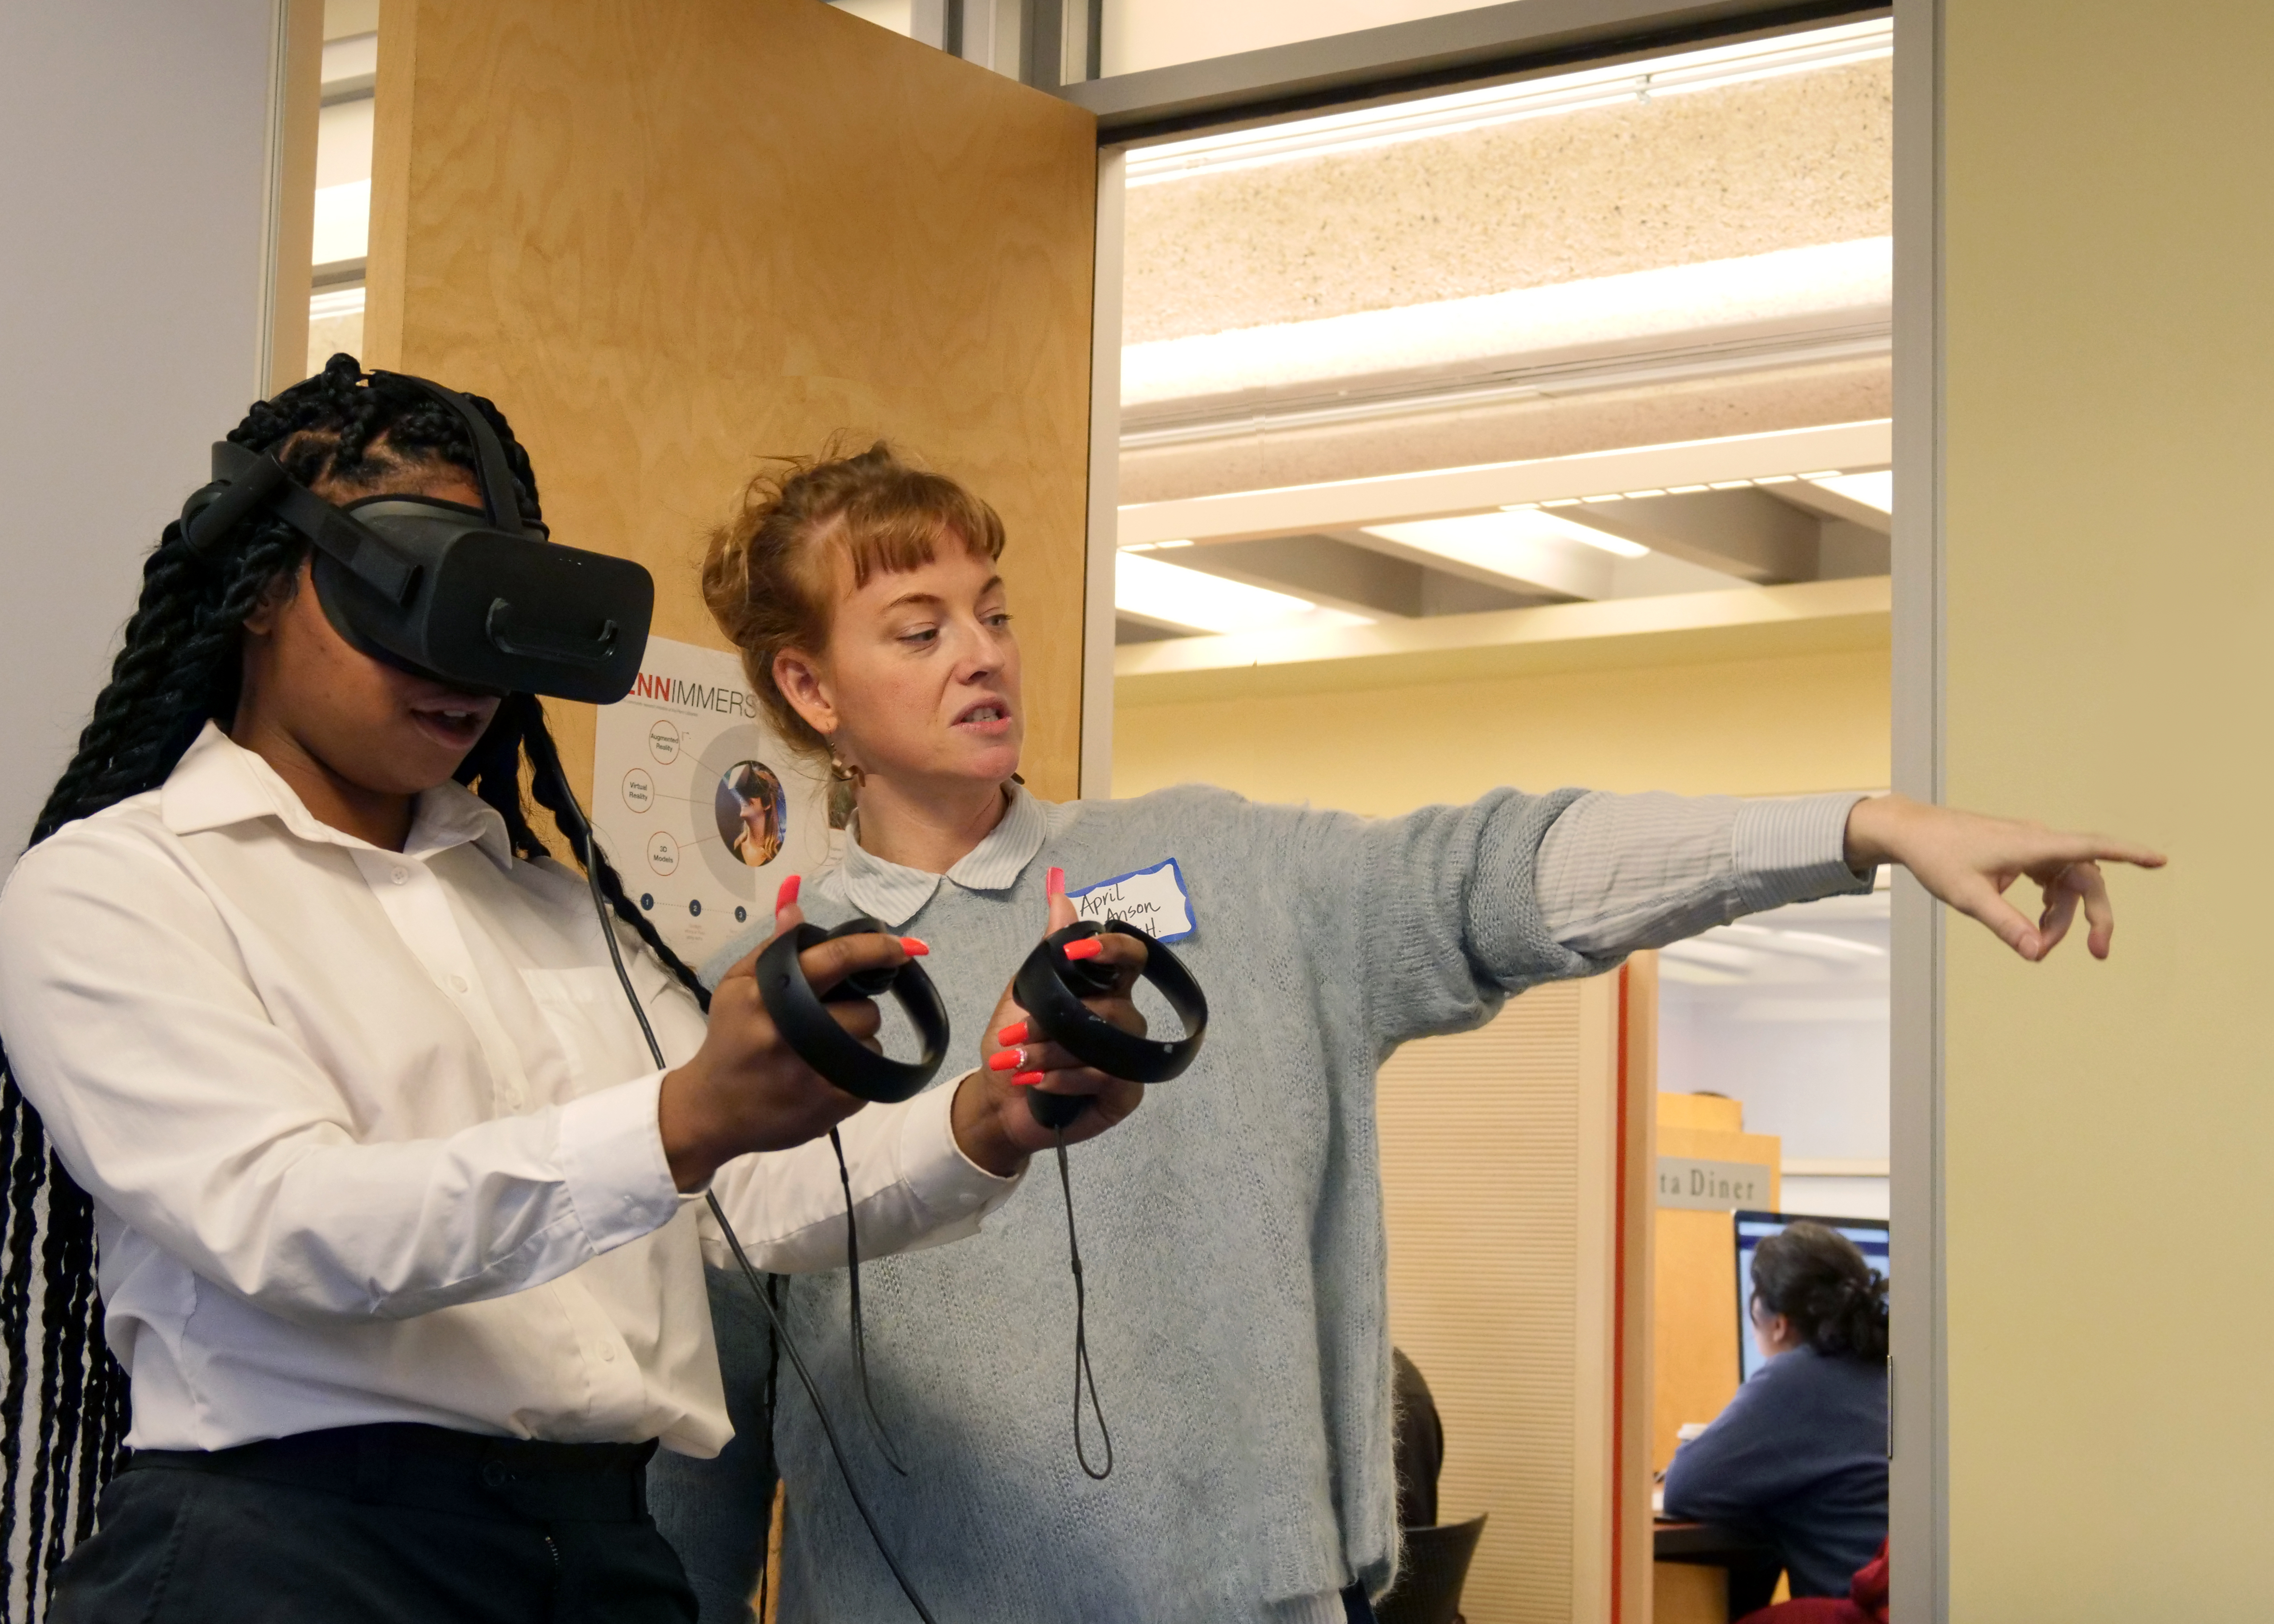 April Anson shows a participant how to use VR controls